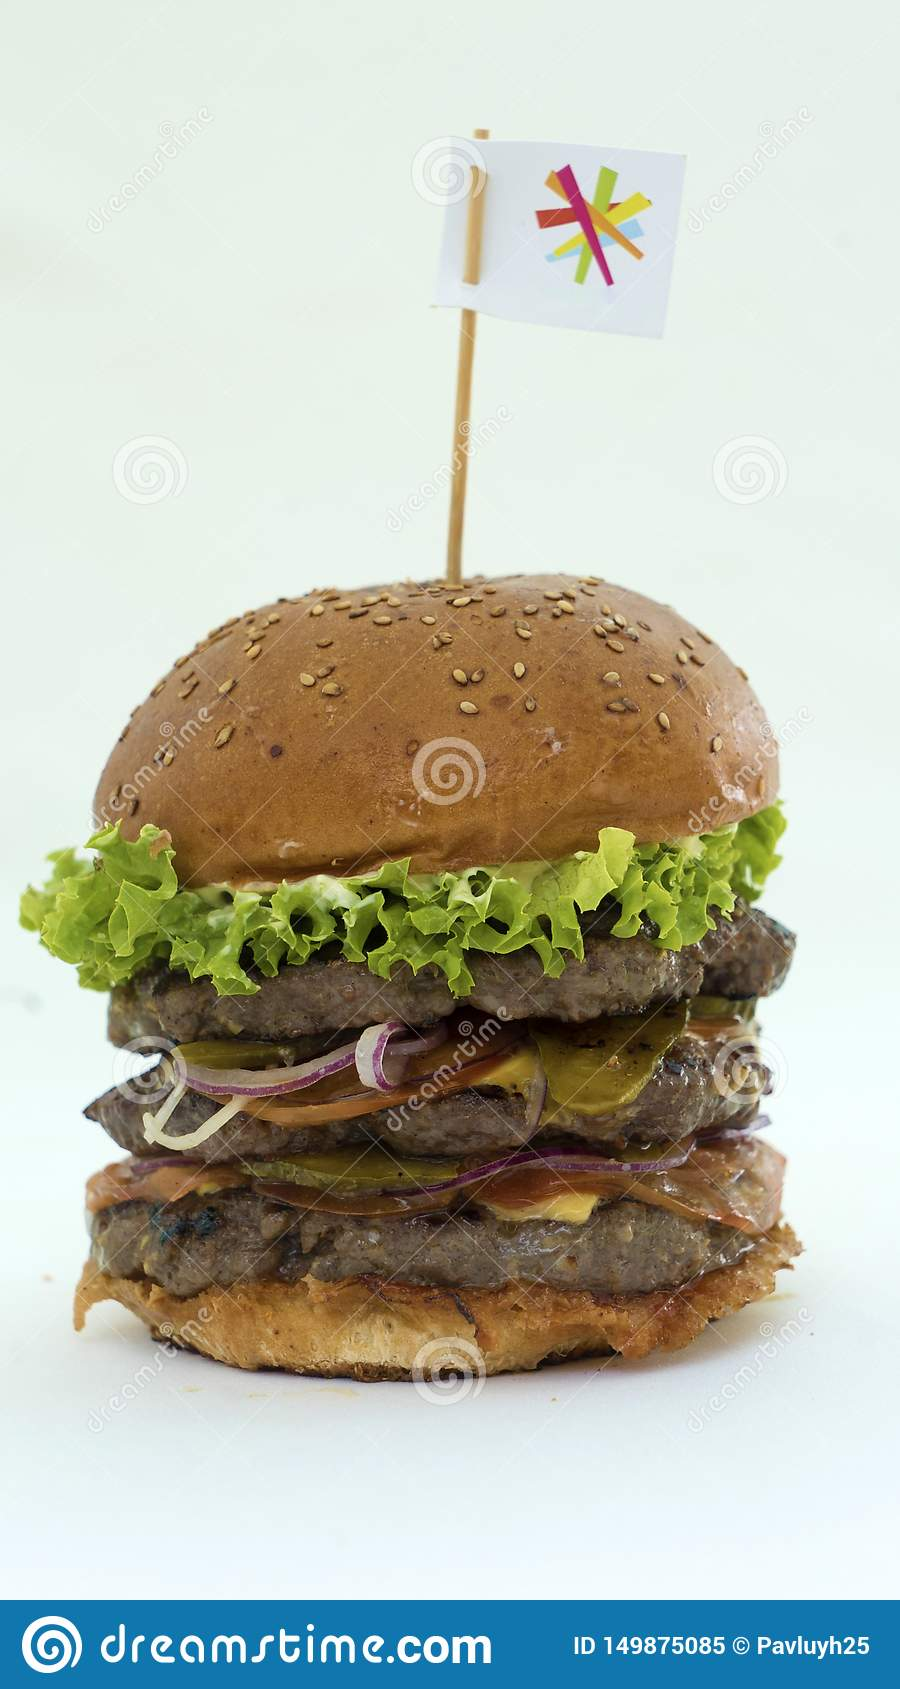 Juicy burger with meat and fresh vegetables on a white background, cooked with your own hands